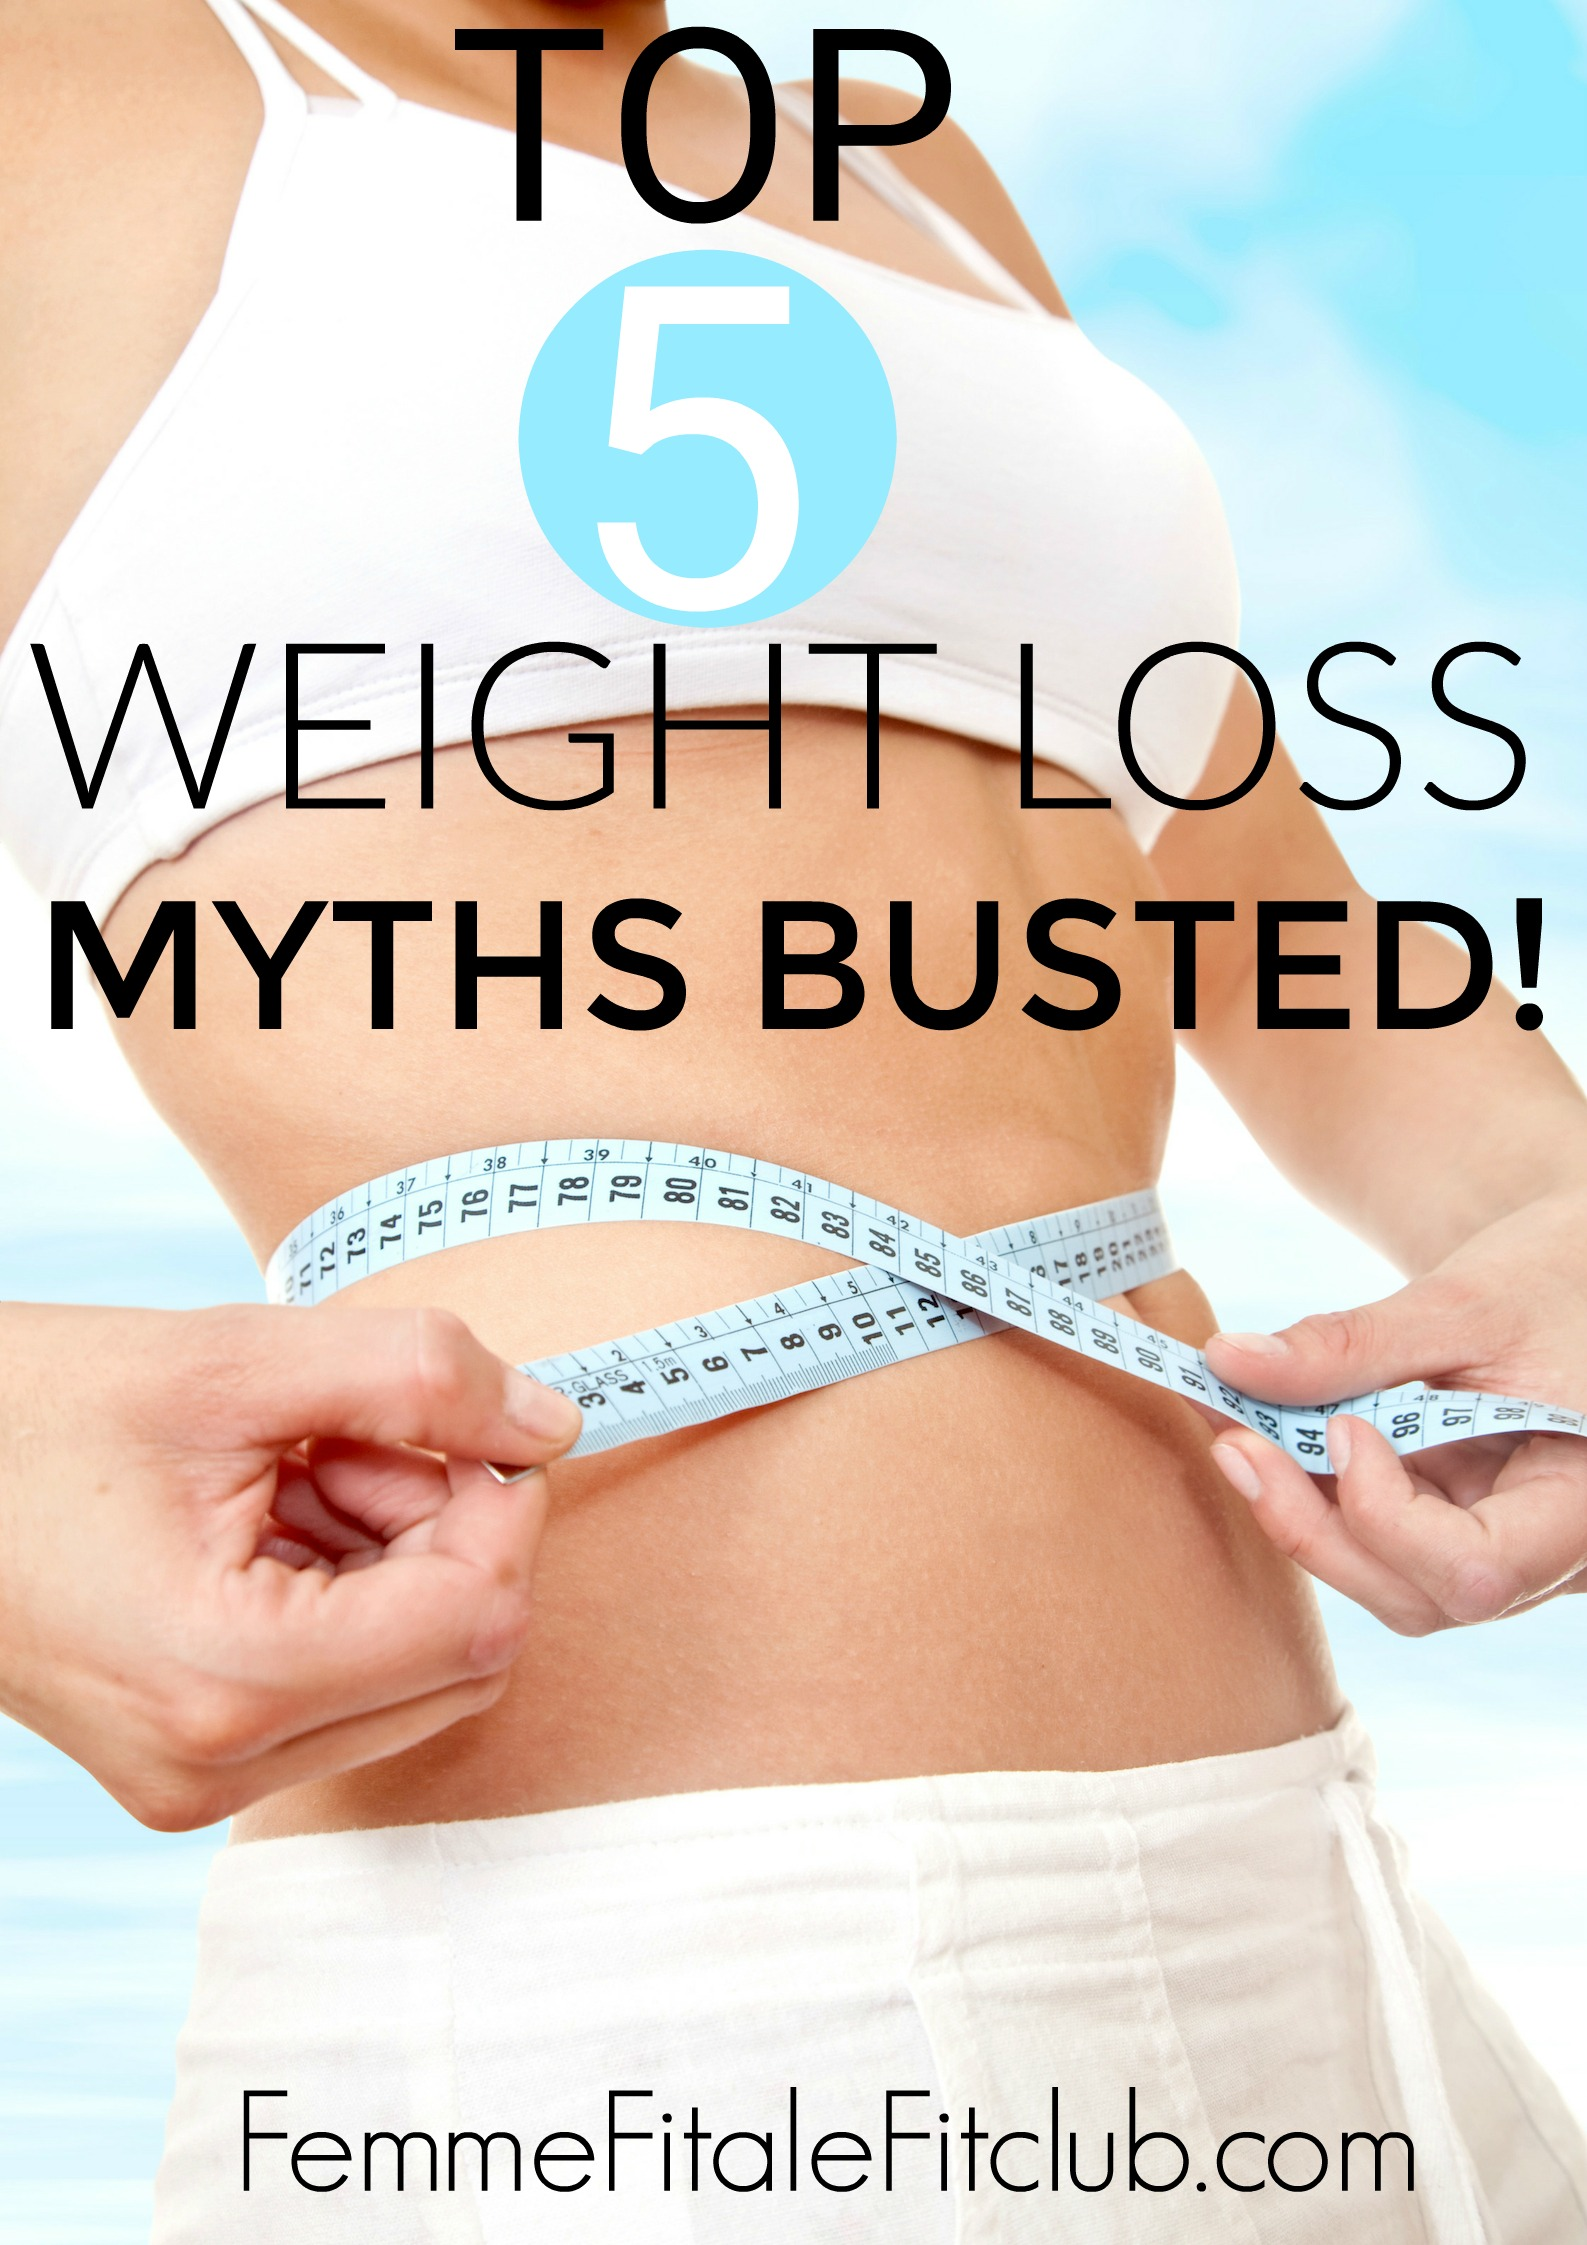 Top 5 weight loss myths busted #weightloss #weightlosstips #fatloss #health #wellness